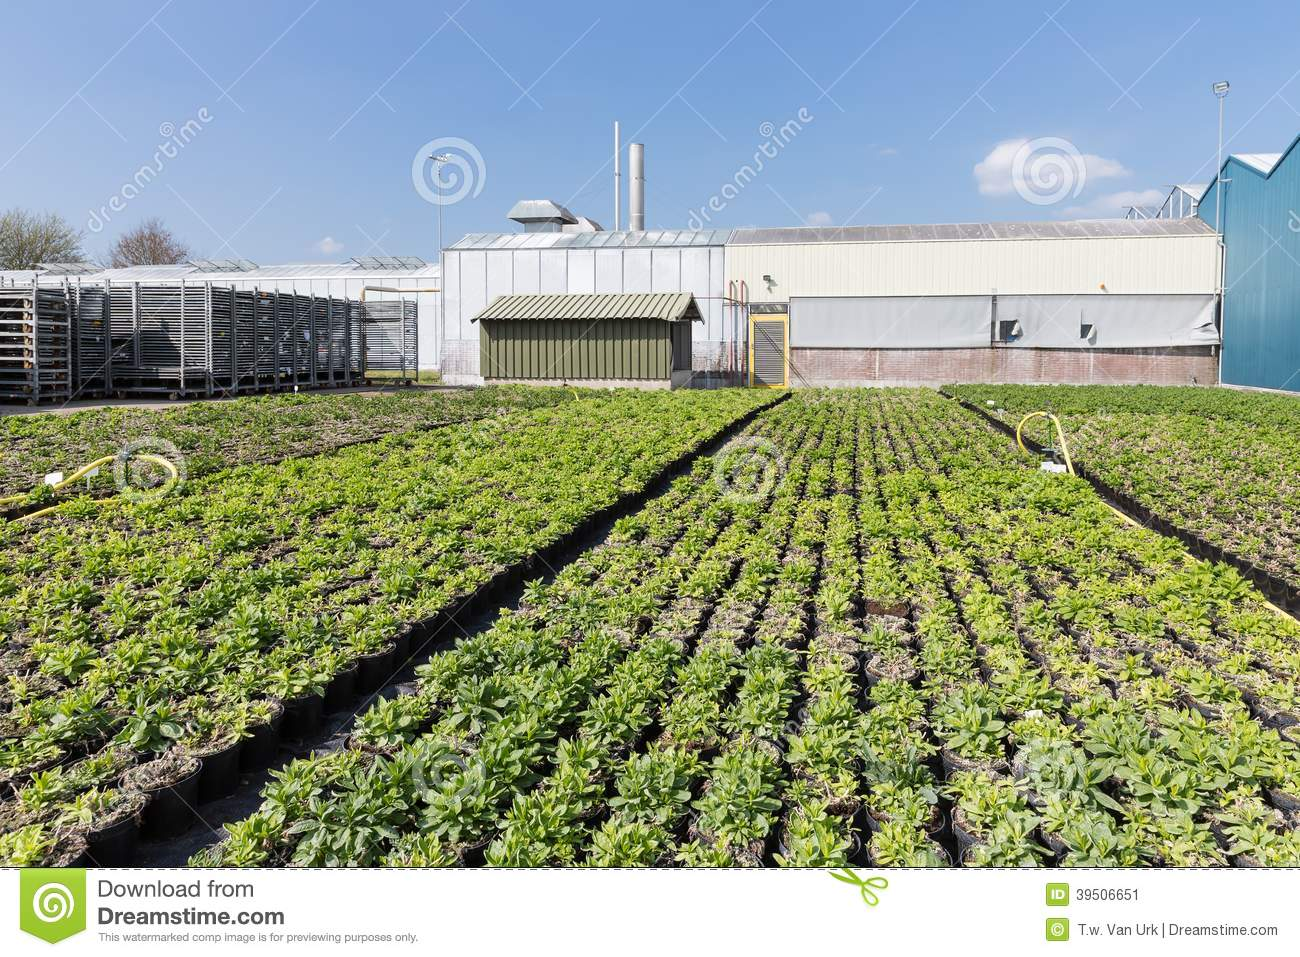 Dutch greenhouse with cultivation of plants